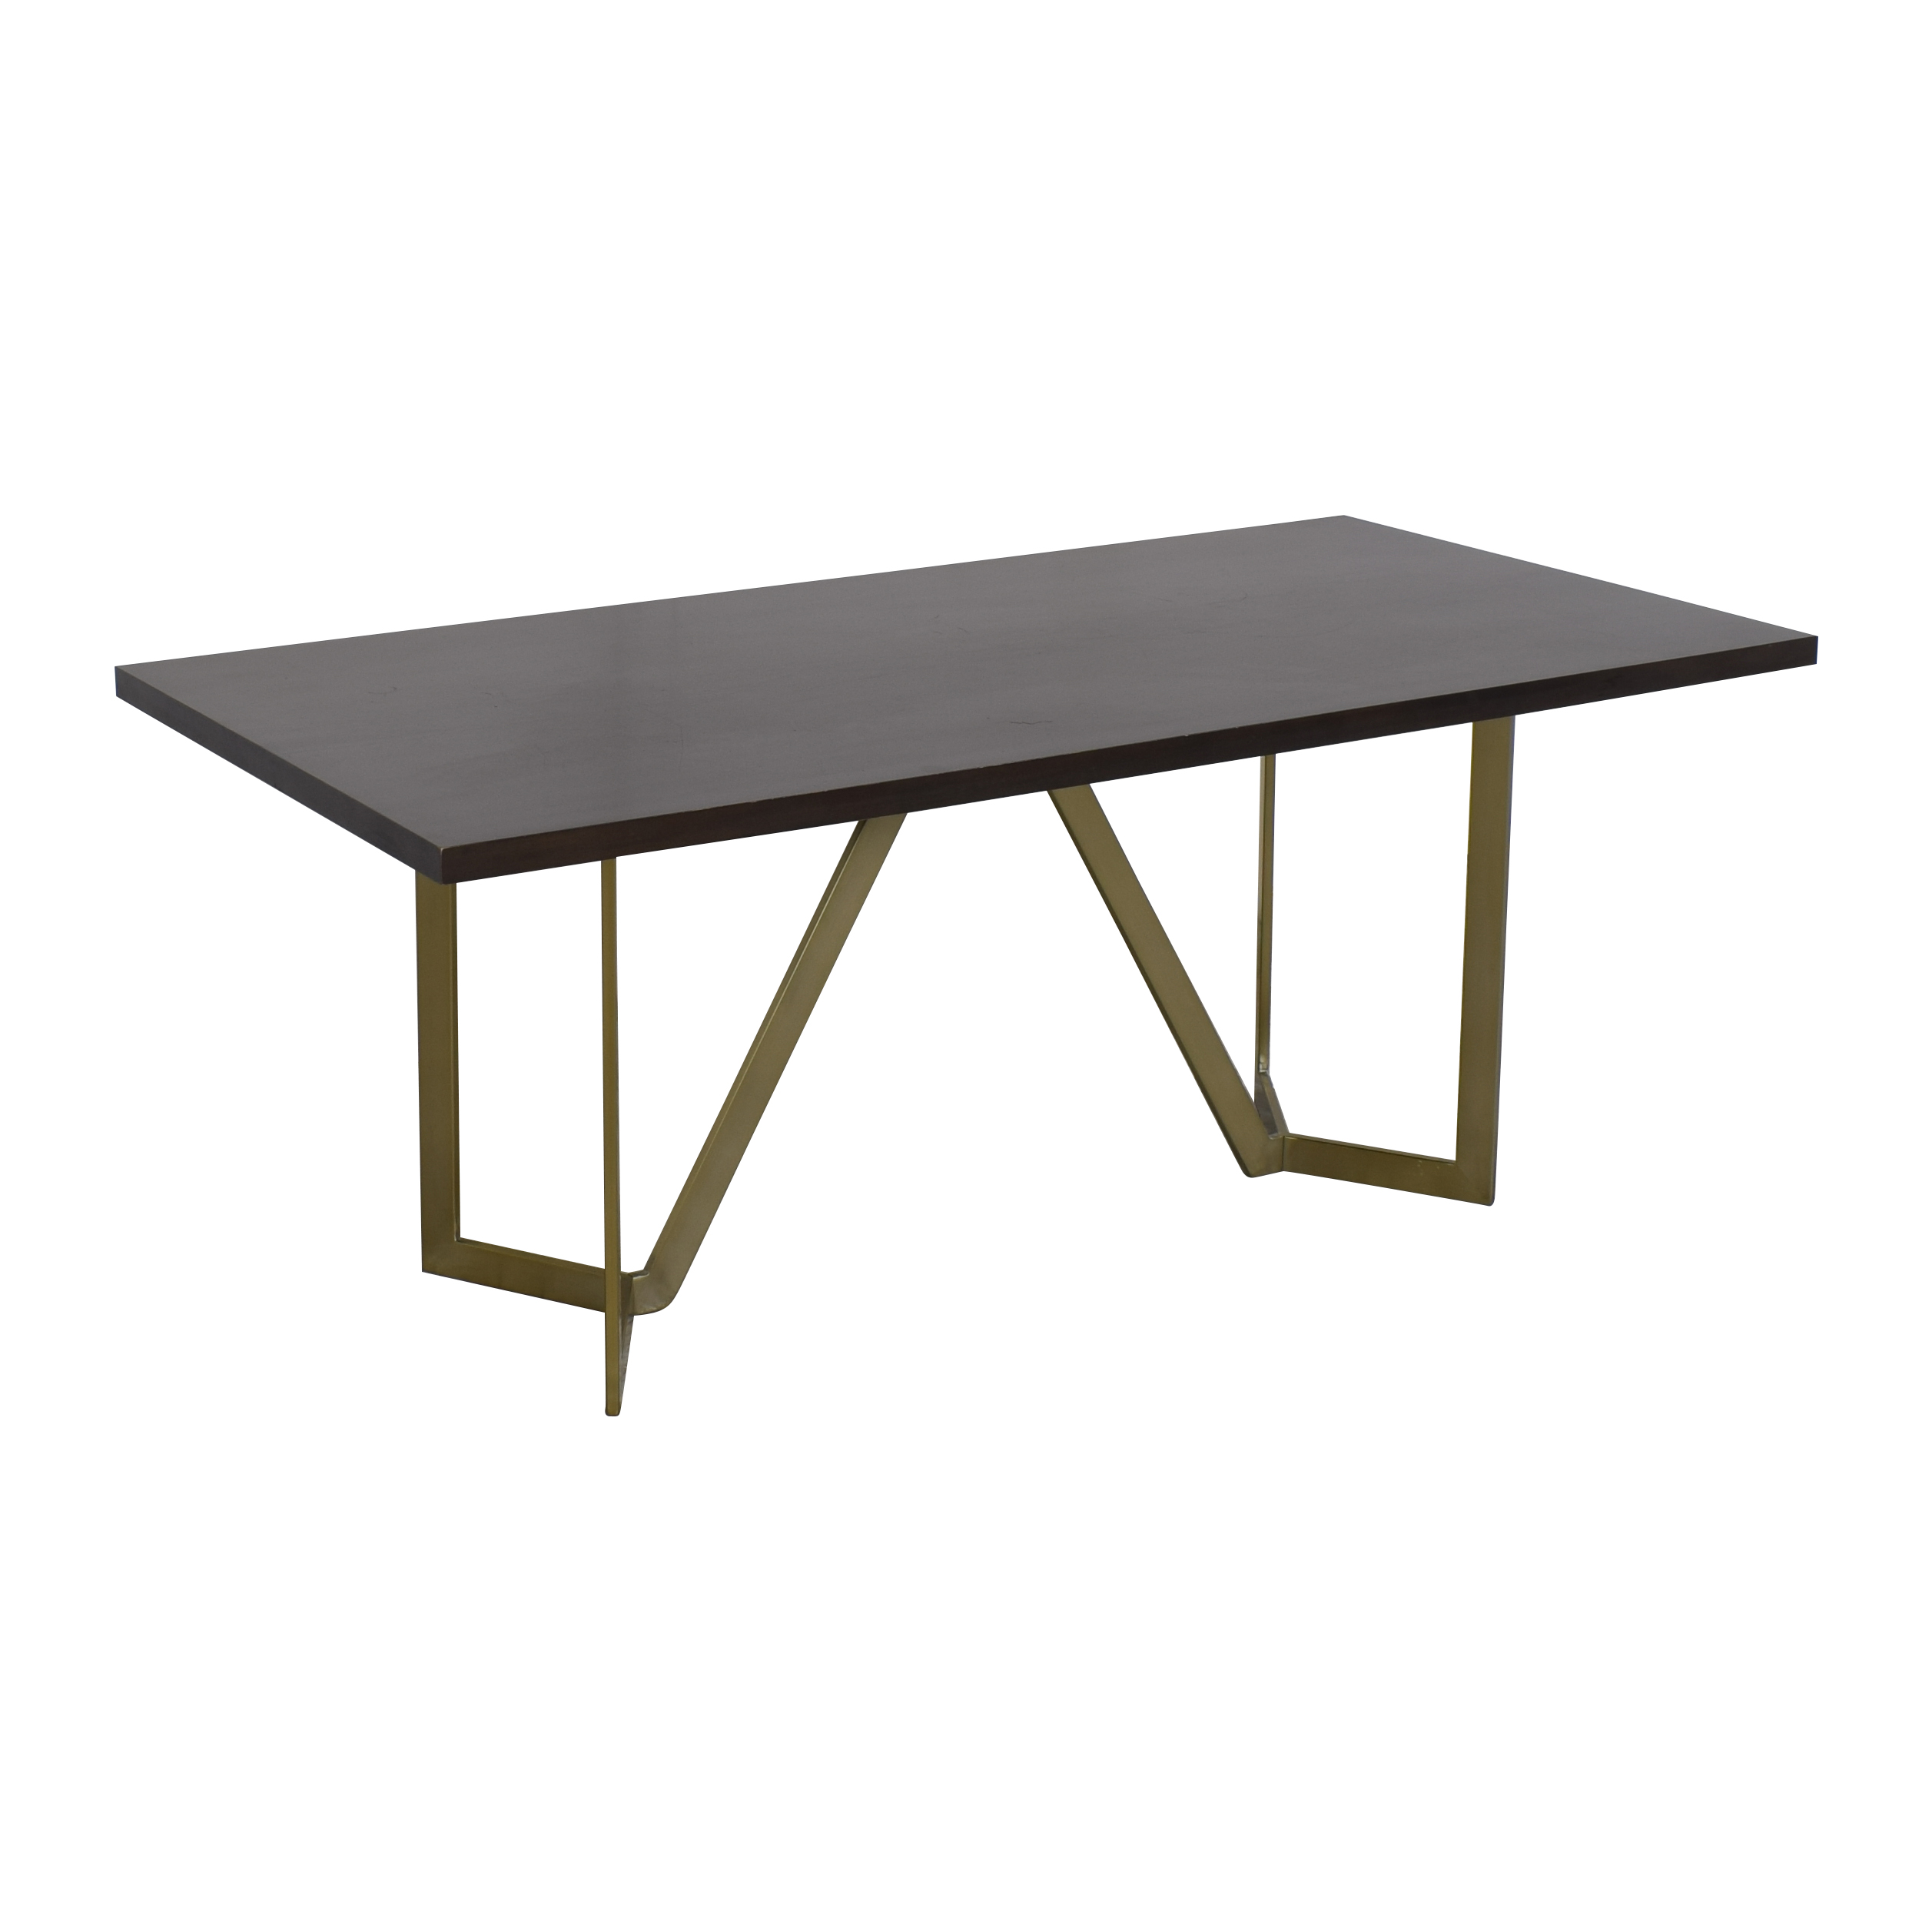 West Elm West Elm Tower Dining Table on sale